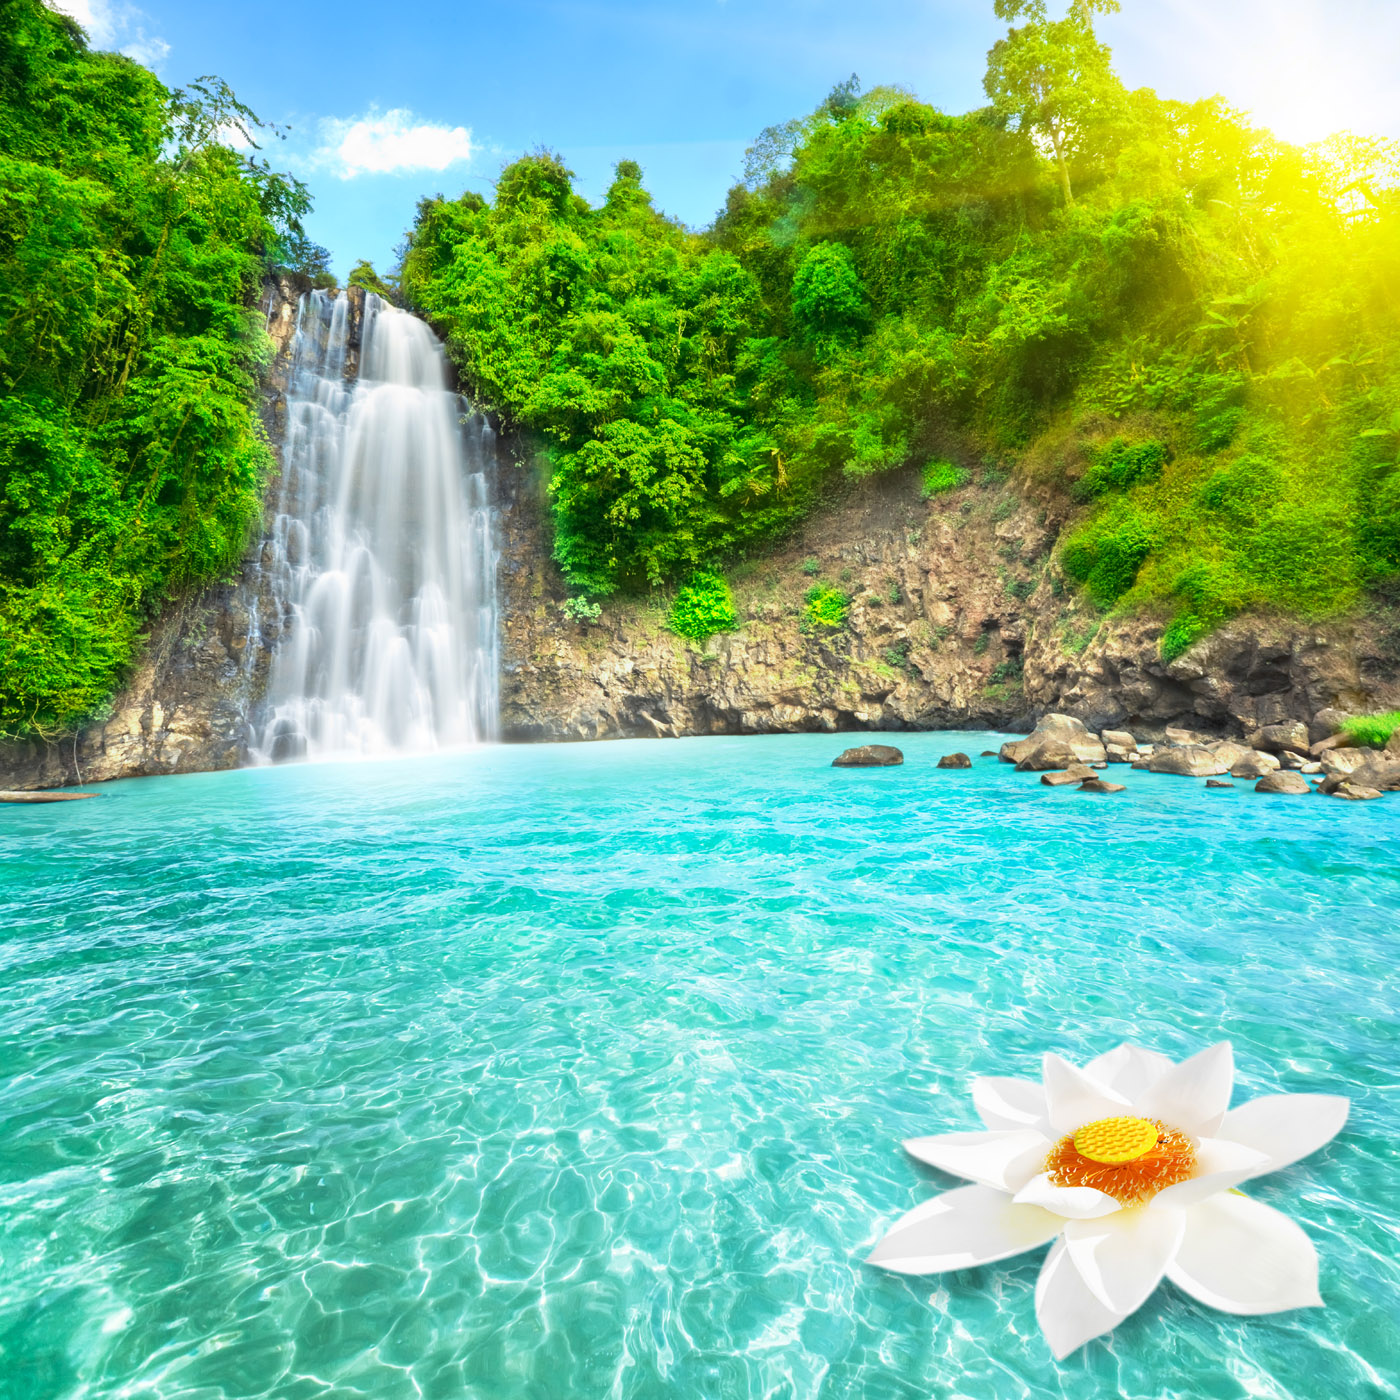 Free Download Beautiful Waterfall Hd Wallpaper Nature Wallpapers 1400x1400 For Your Desktop Mobile Tablet Explore 75 Beautiful Pictures Wallpaper Pretty Wallpaper Images Beautiful Background Wallpapers Beautiful Computer Wallpaper Pictures